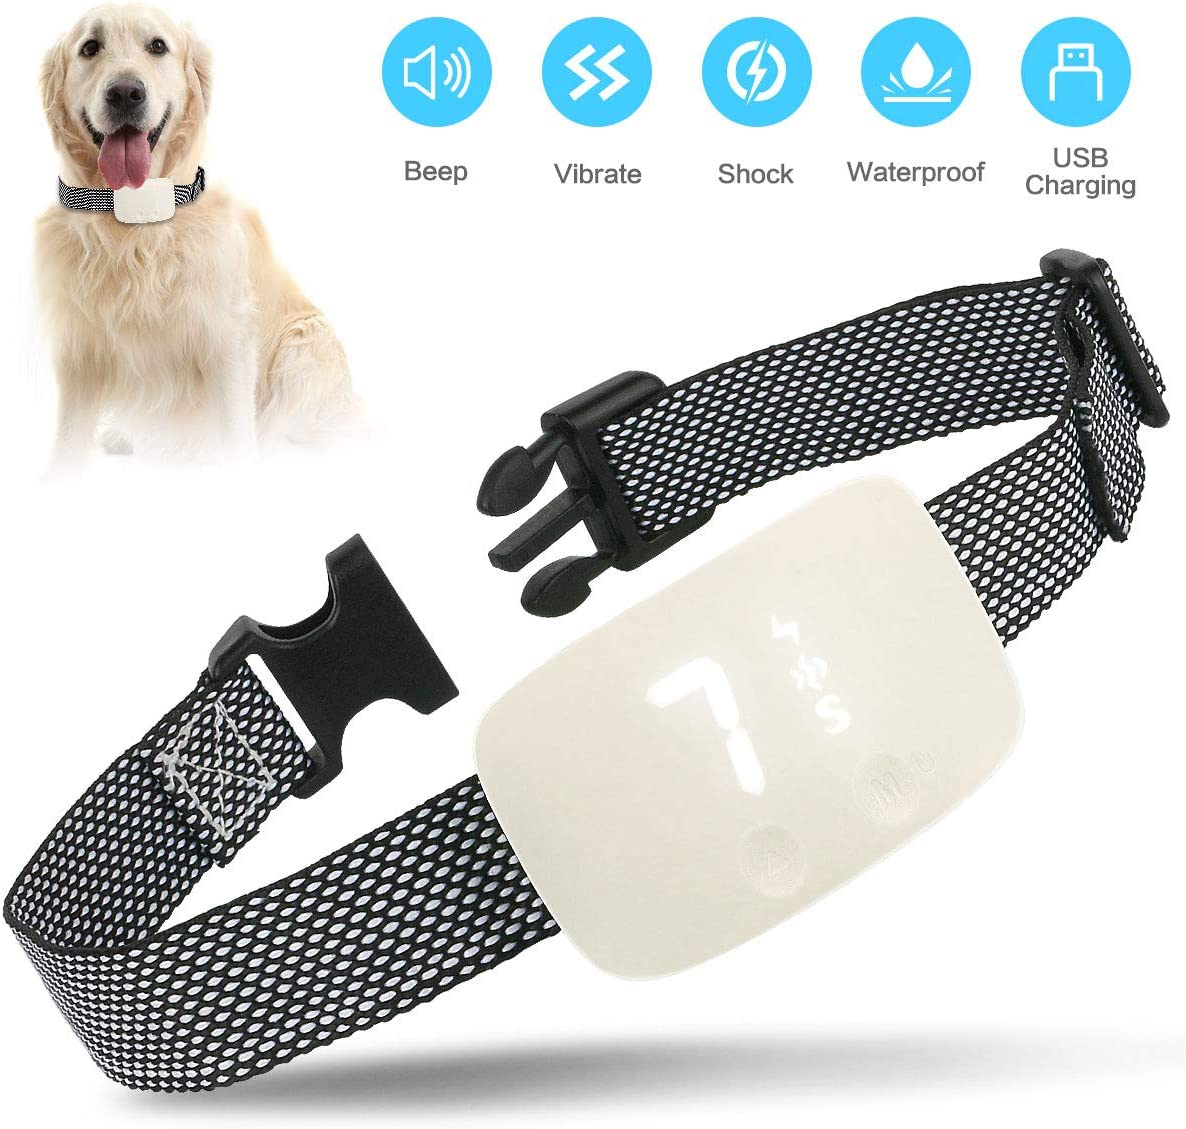 RJSY Dog Bark Collars for Small Medium Large Dogs Barking Control Training Collar Anti Bark Collar Rechargeable Waterproof No Bark Collar with 3 Modes Beep Vibration and No Harm Shock